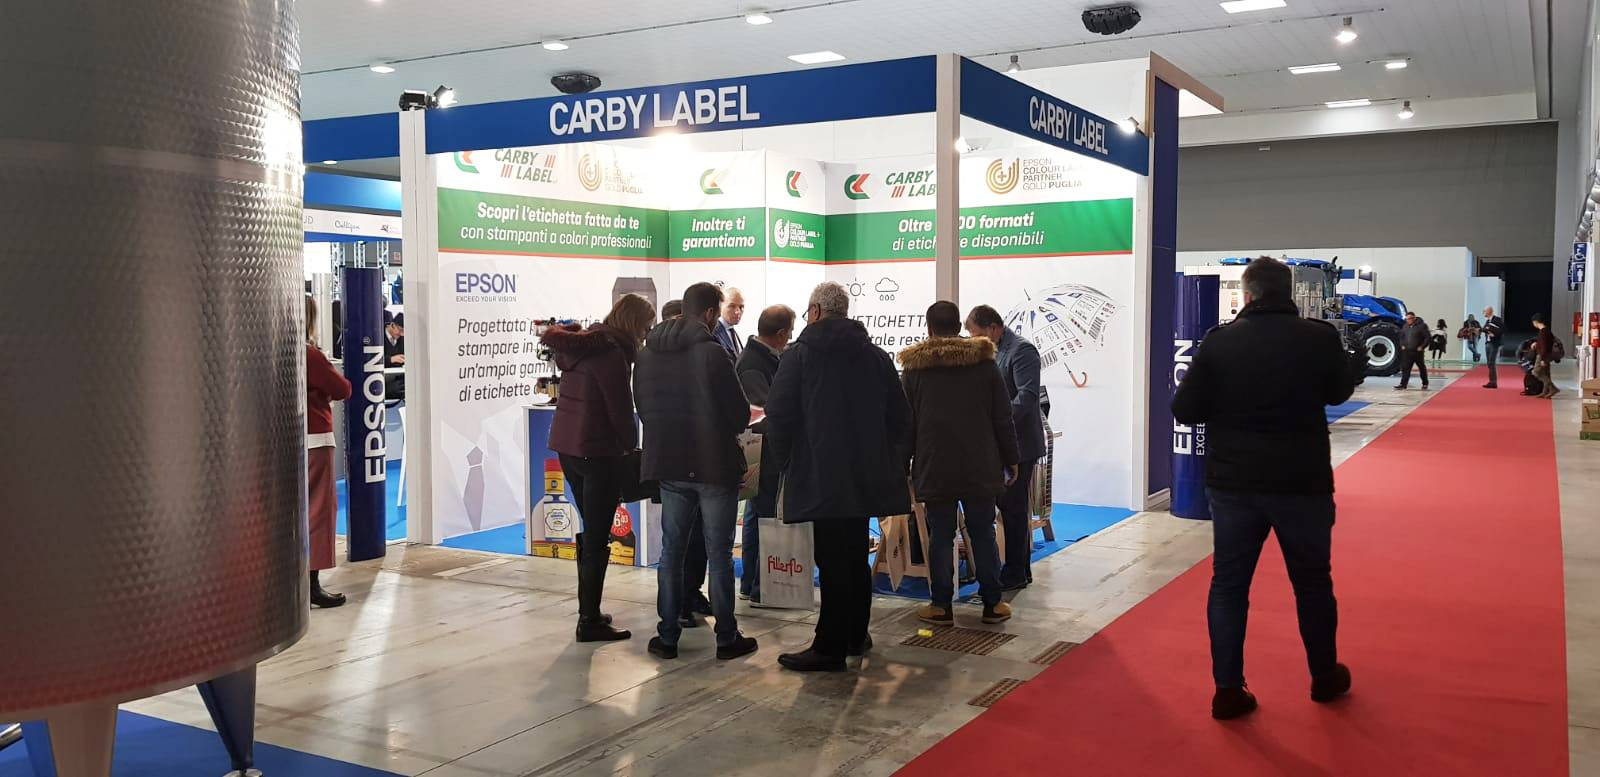 CARBY LABEL A ENOLIEXPO 2019